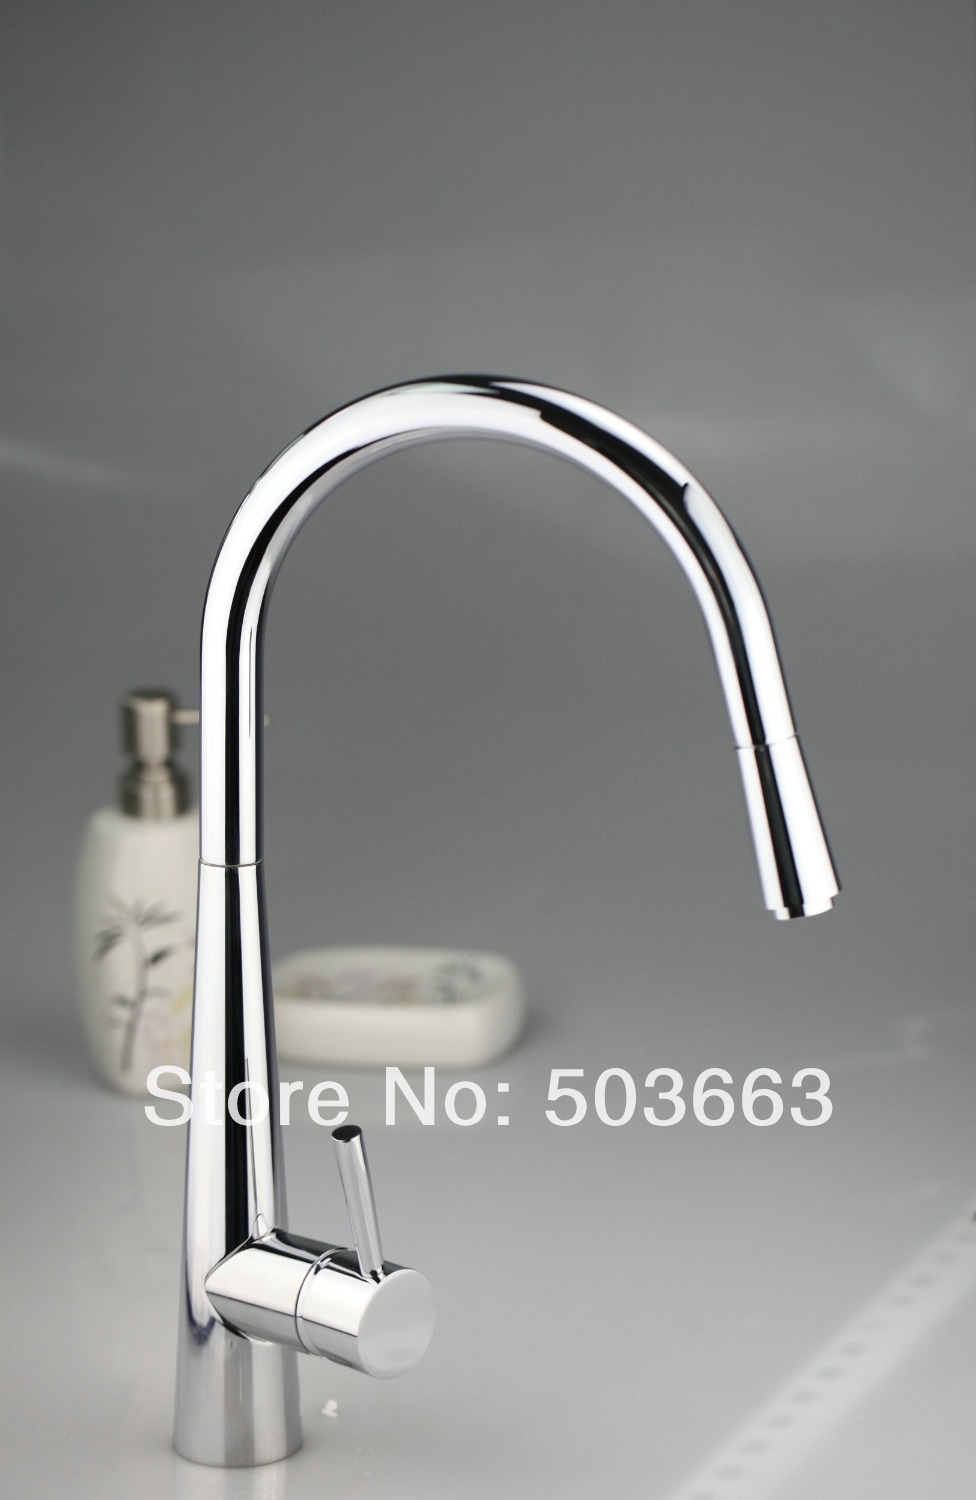 цена на Good Quality Chrome Brass Water Kitchen Faucet Swivel Spout Pull Out Vessel Sink Single Handle Deck Mounted Mixer Tap MF-376